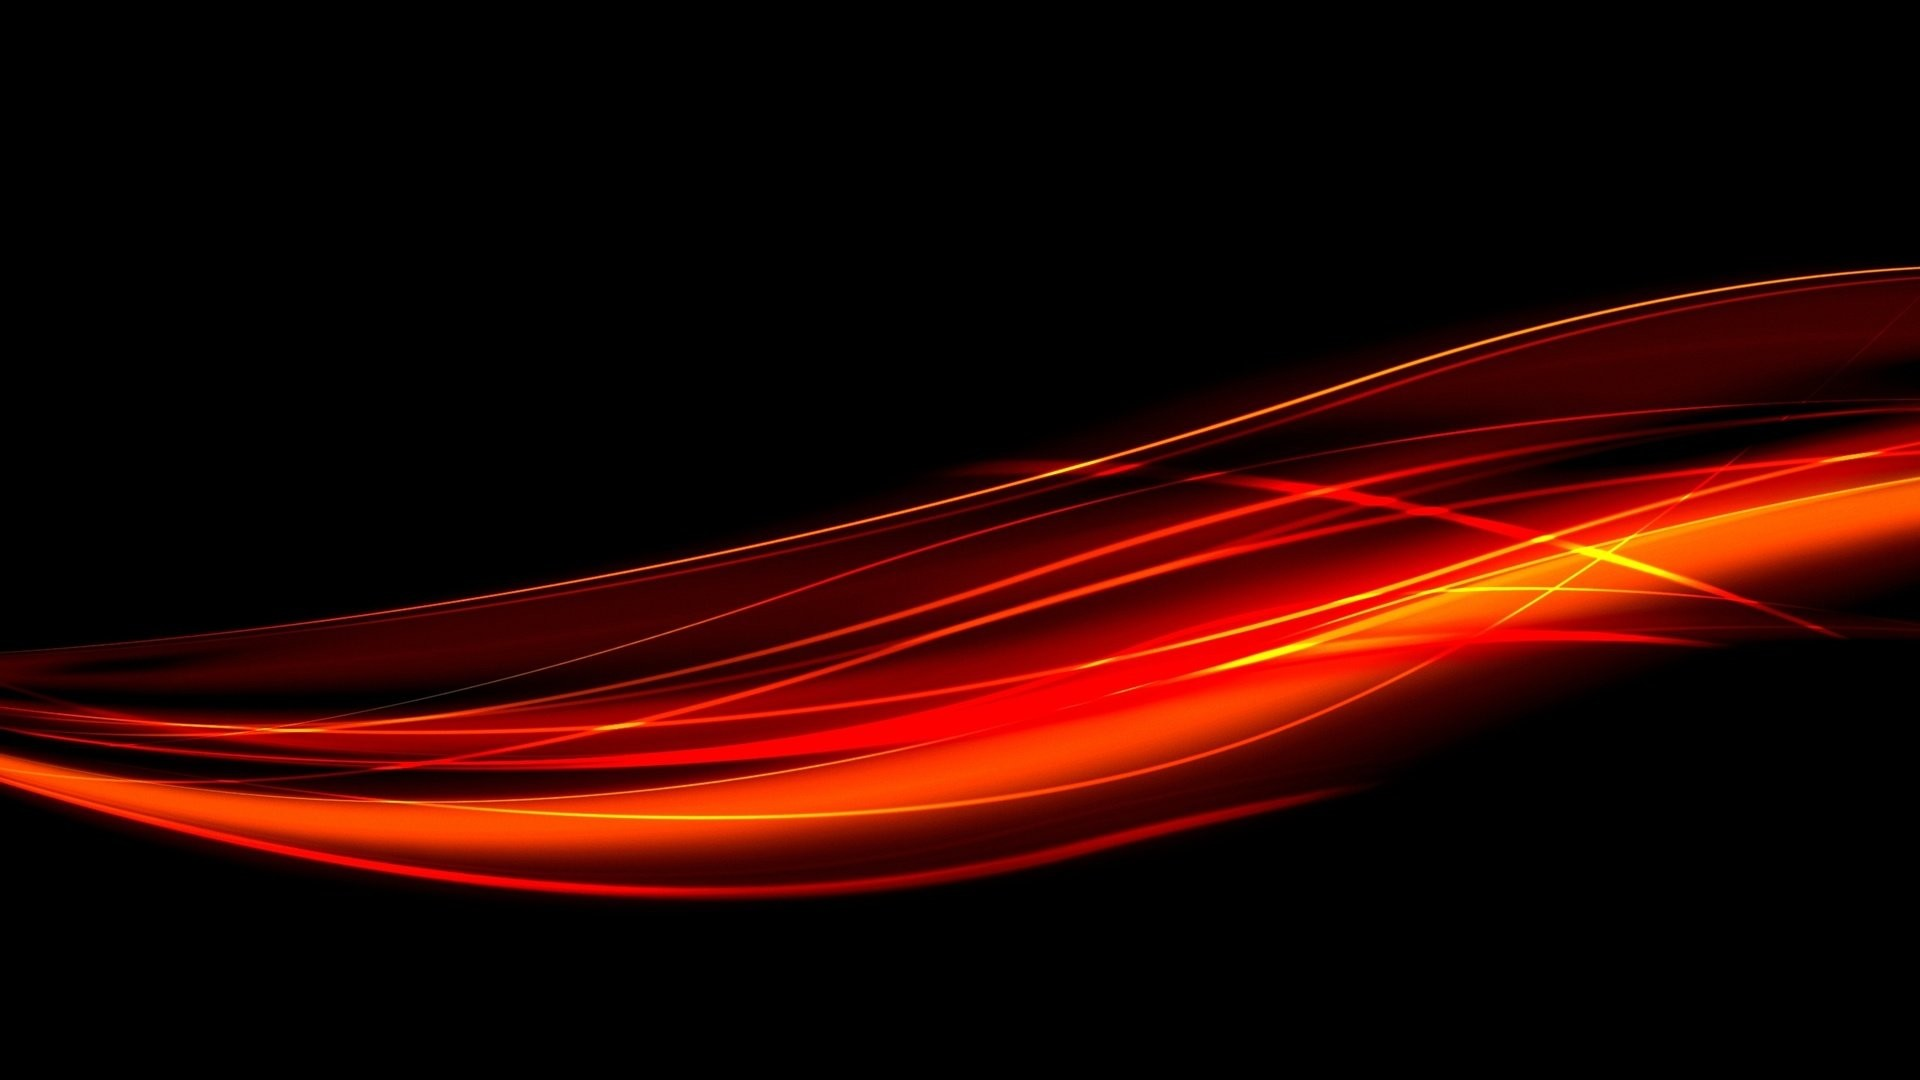 Black and red abstract wallpaper 56 images - Red gaming wallpaper ...